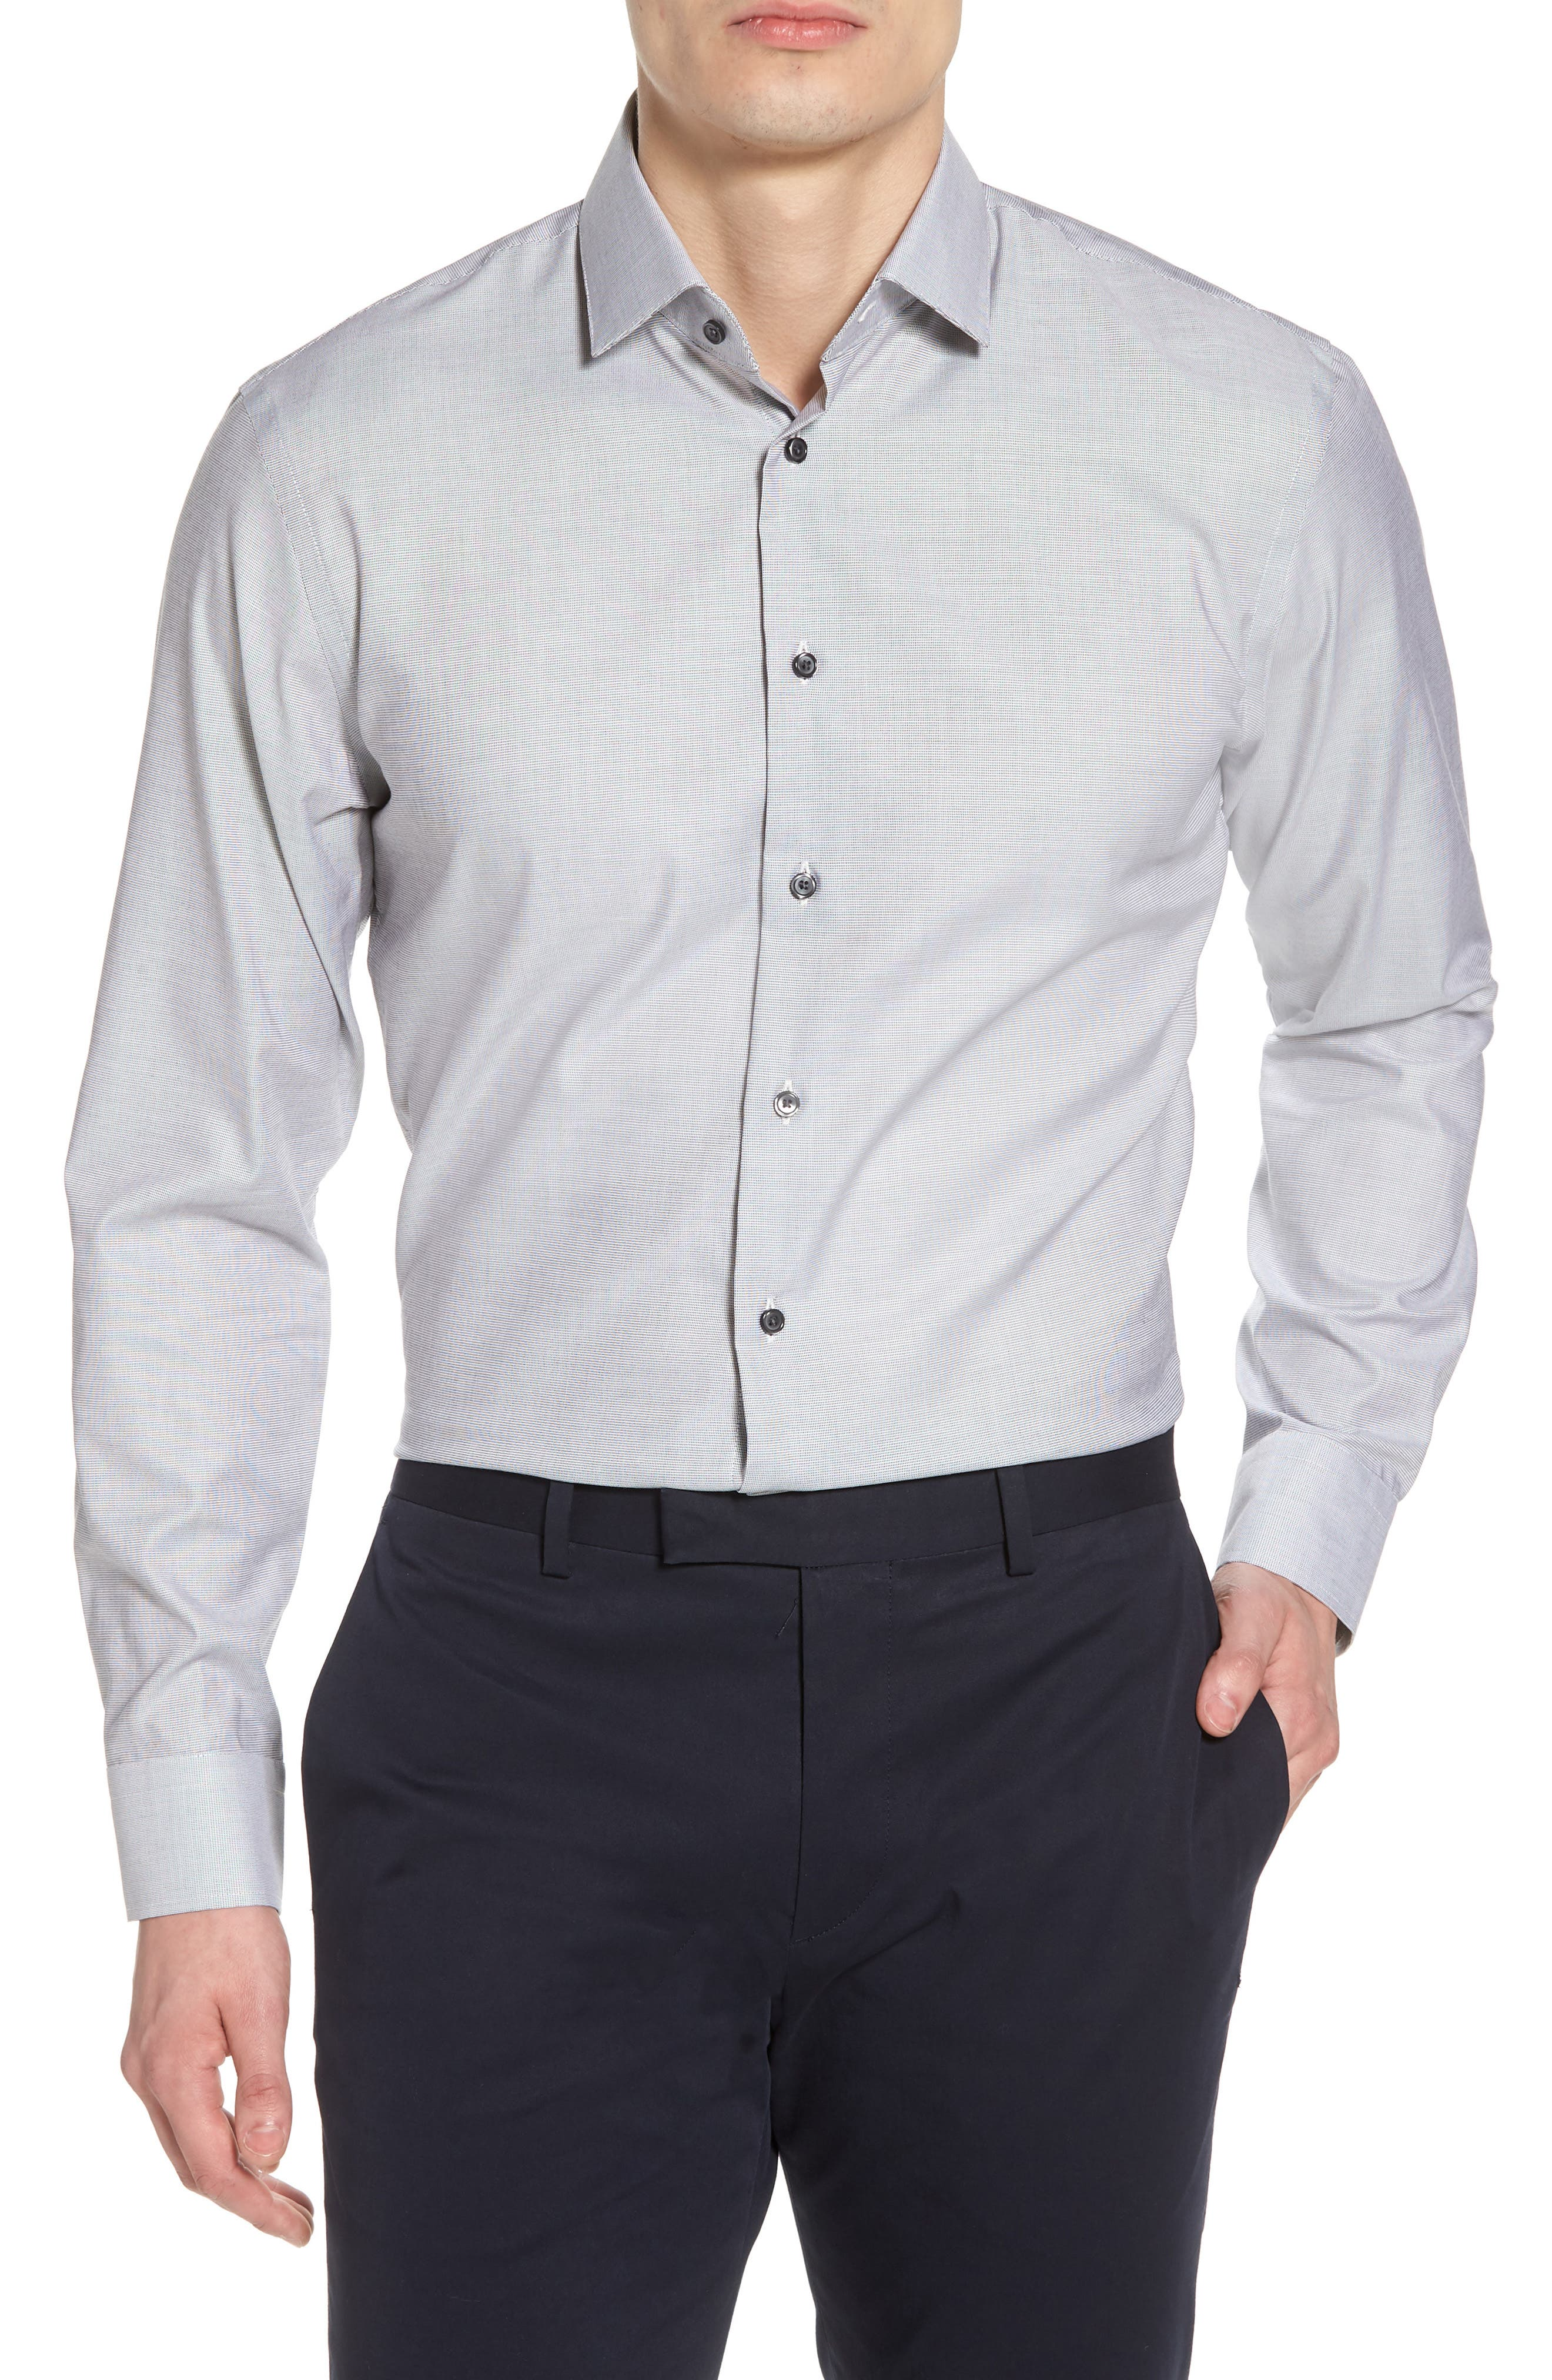 Trim Fit Non-Iron Stretch Solid Dress Shirt,                             Main thumbnail 1, color,                             Grey Sconce